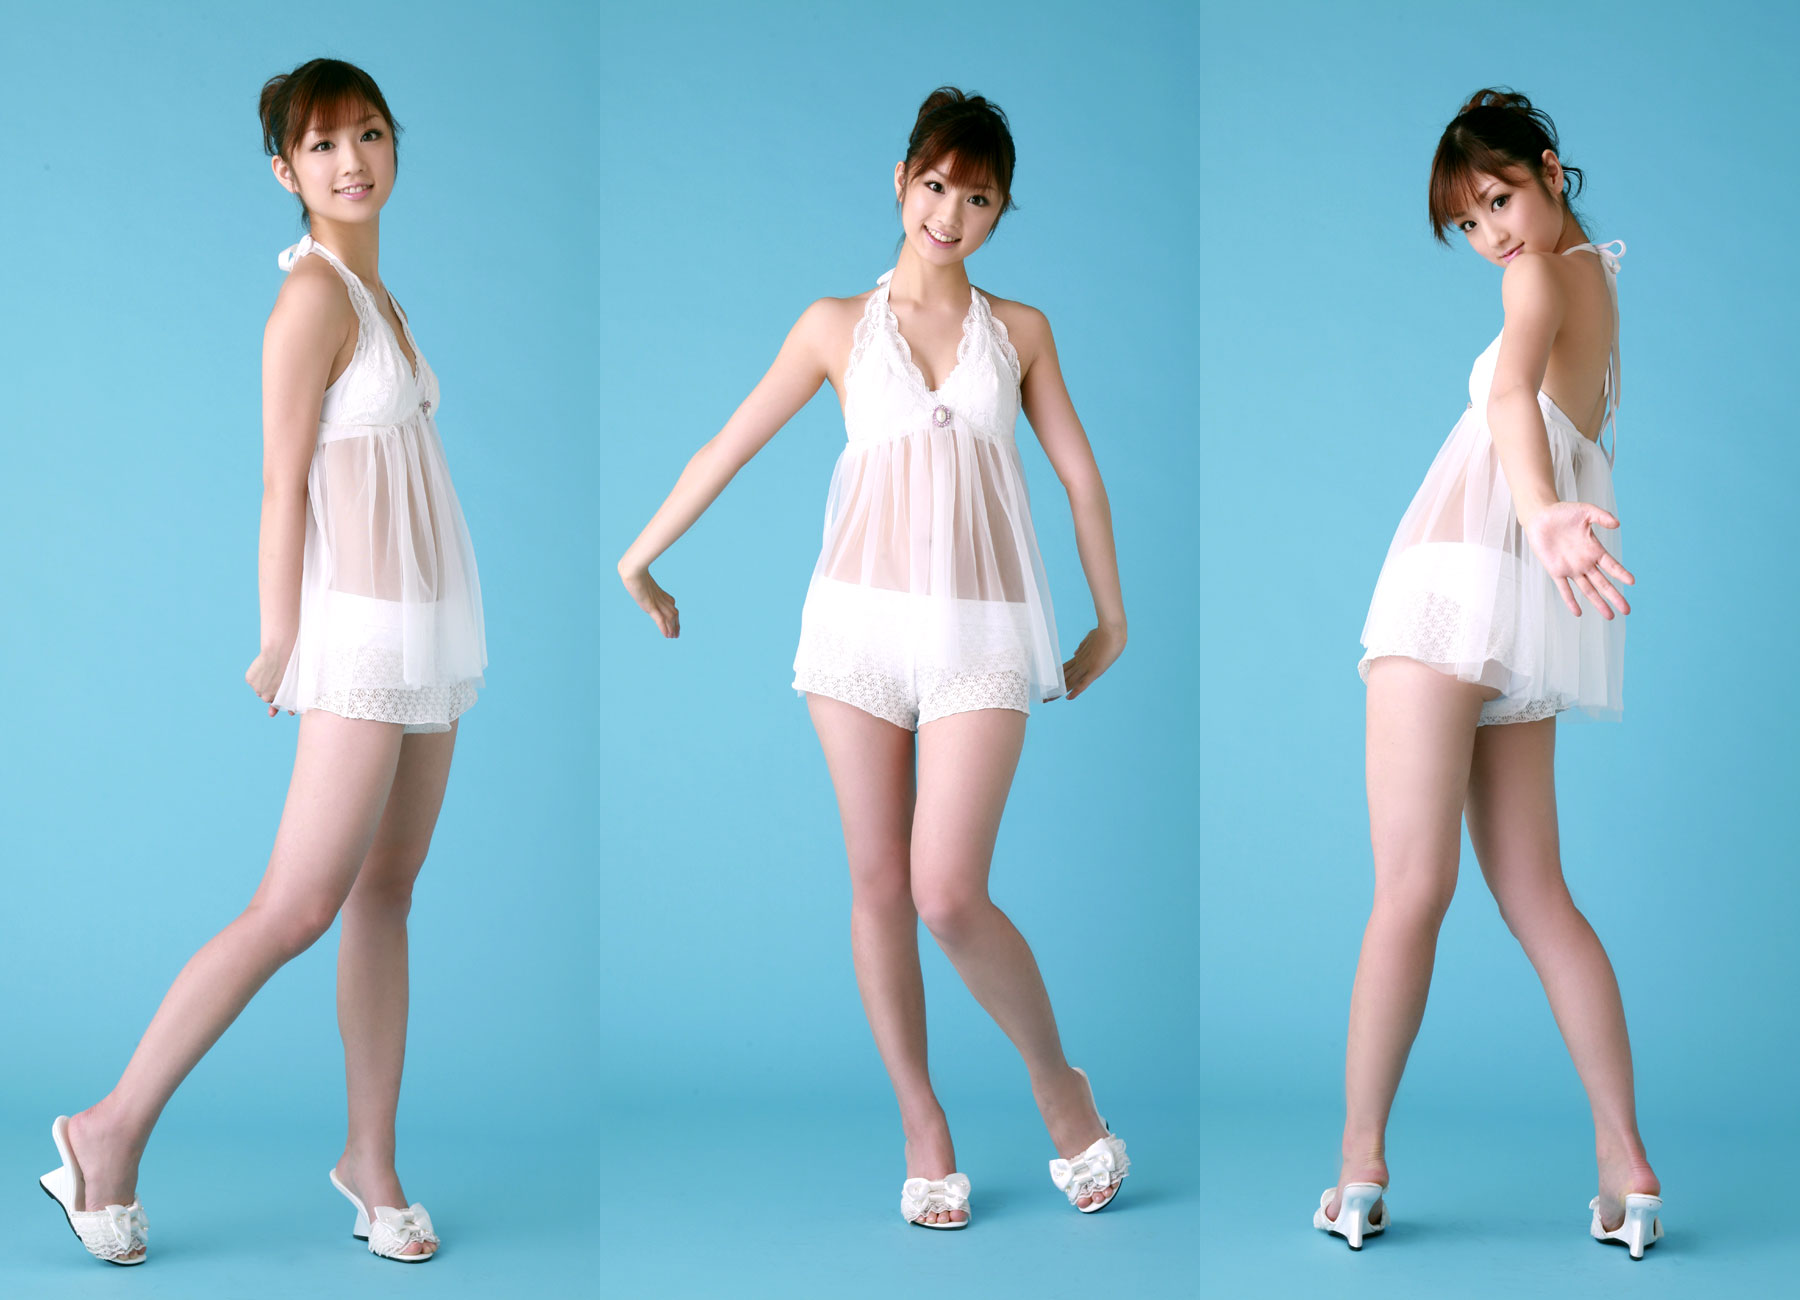 woman dress white asians HD Wallpaper